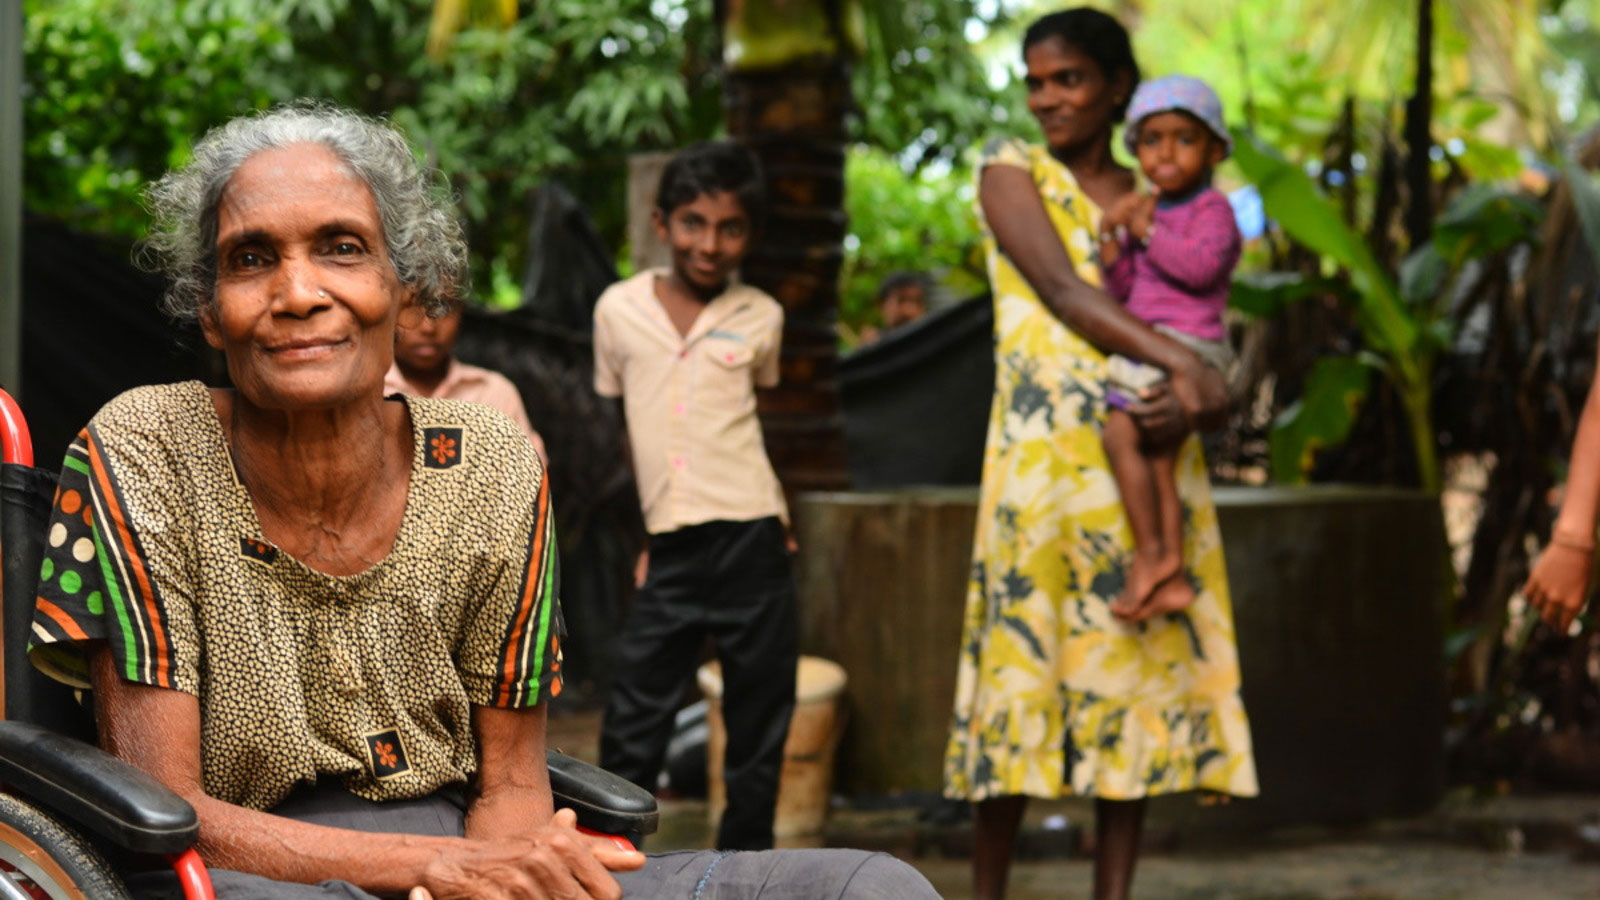 Arumugam Pakkiyam in her village in Sr Lanka in 2015